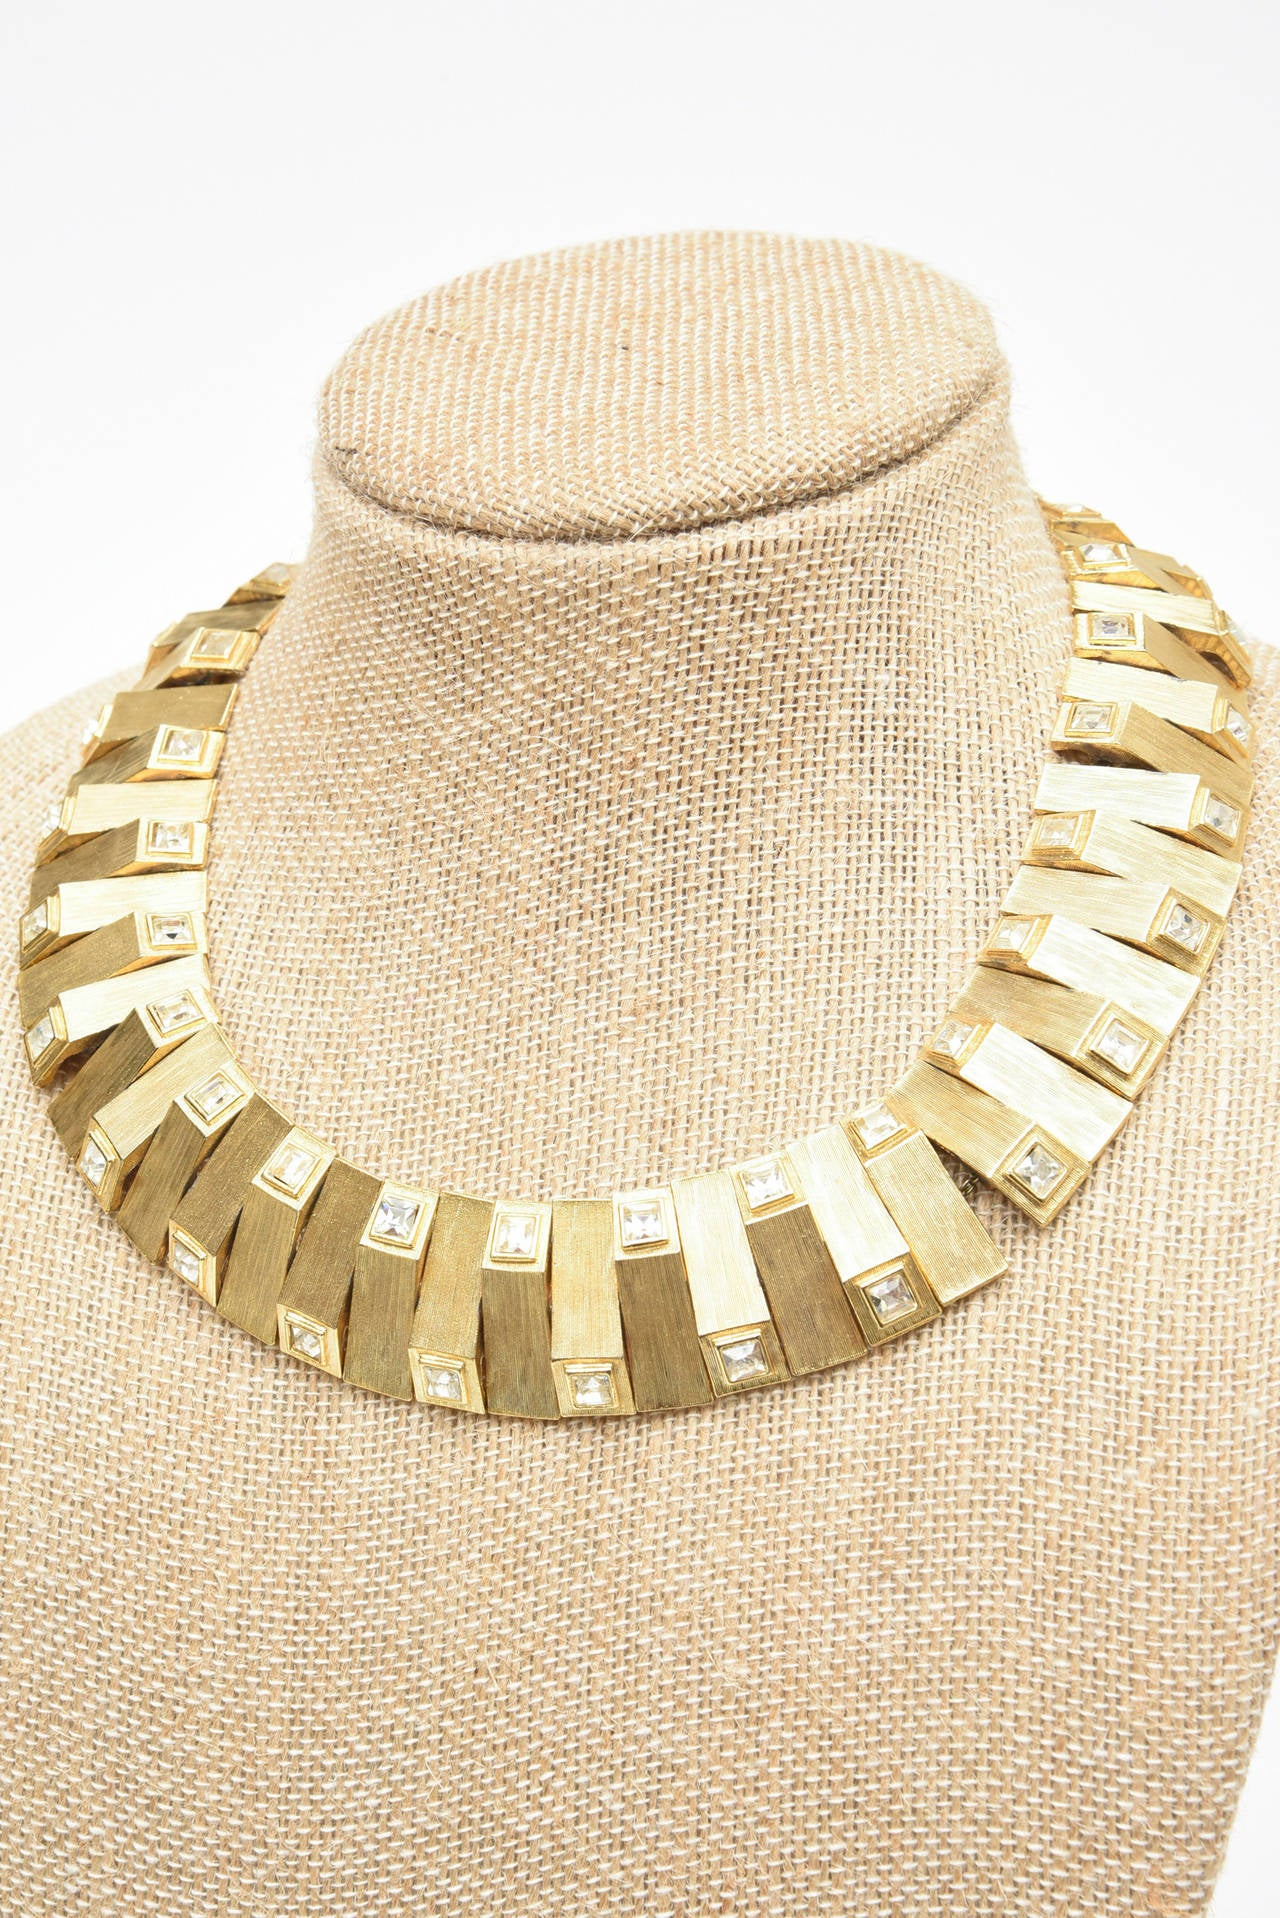 Modern Satin Brushed Gold Plated Metal with Rhinstone Reticulated Collar Necklace For Sale